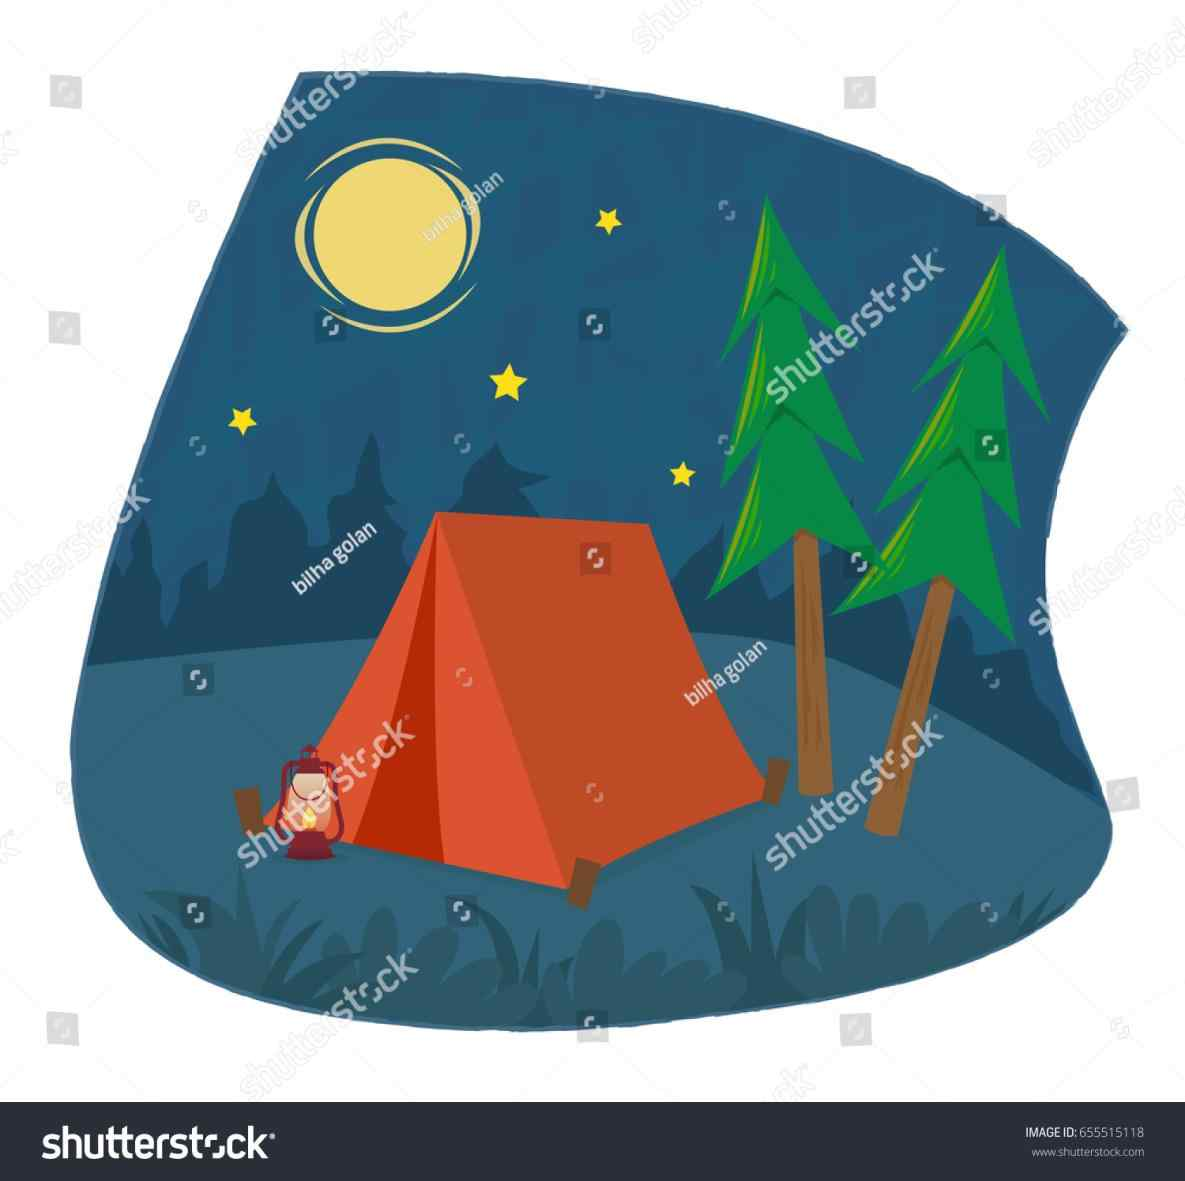 1185x1181 Camping Tents Clip Art Liberty Family Dome Tent Fold Hiking